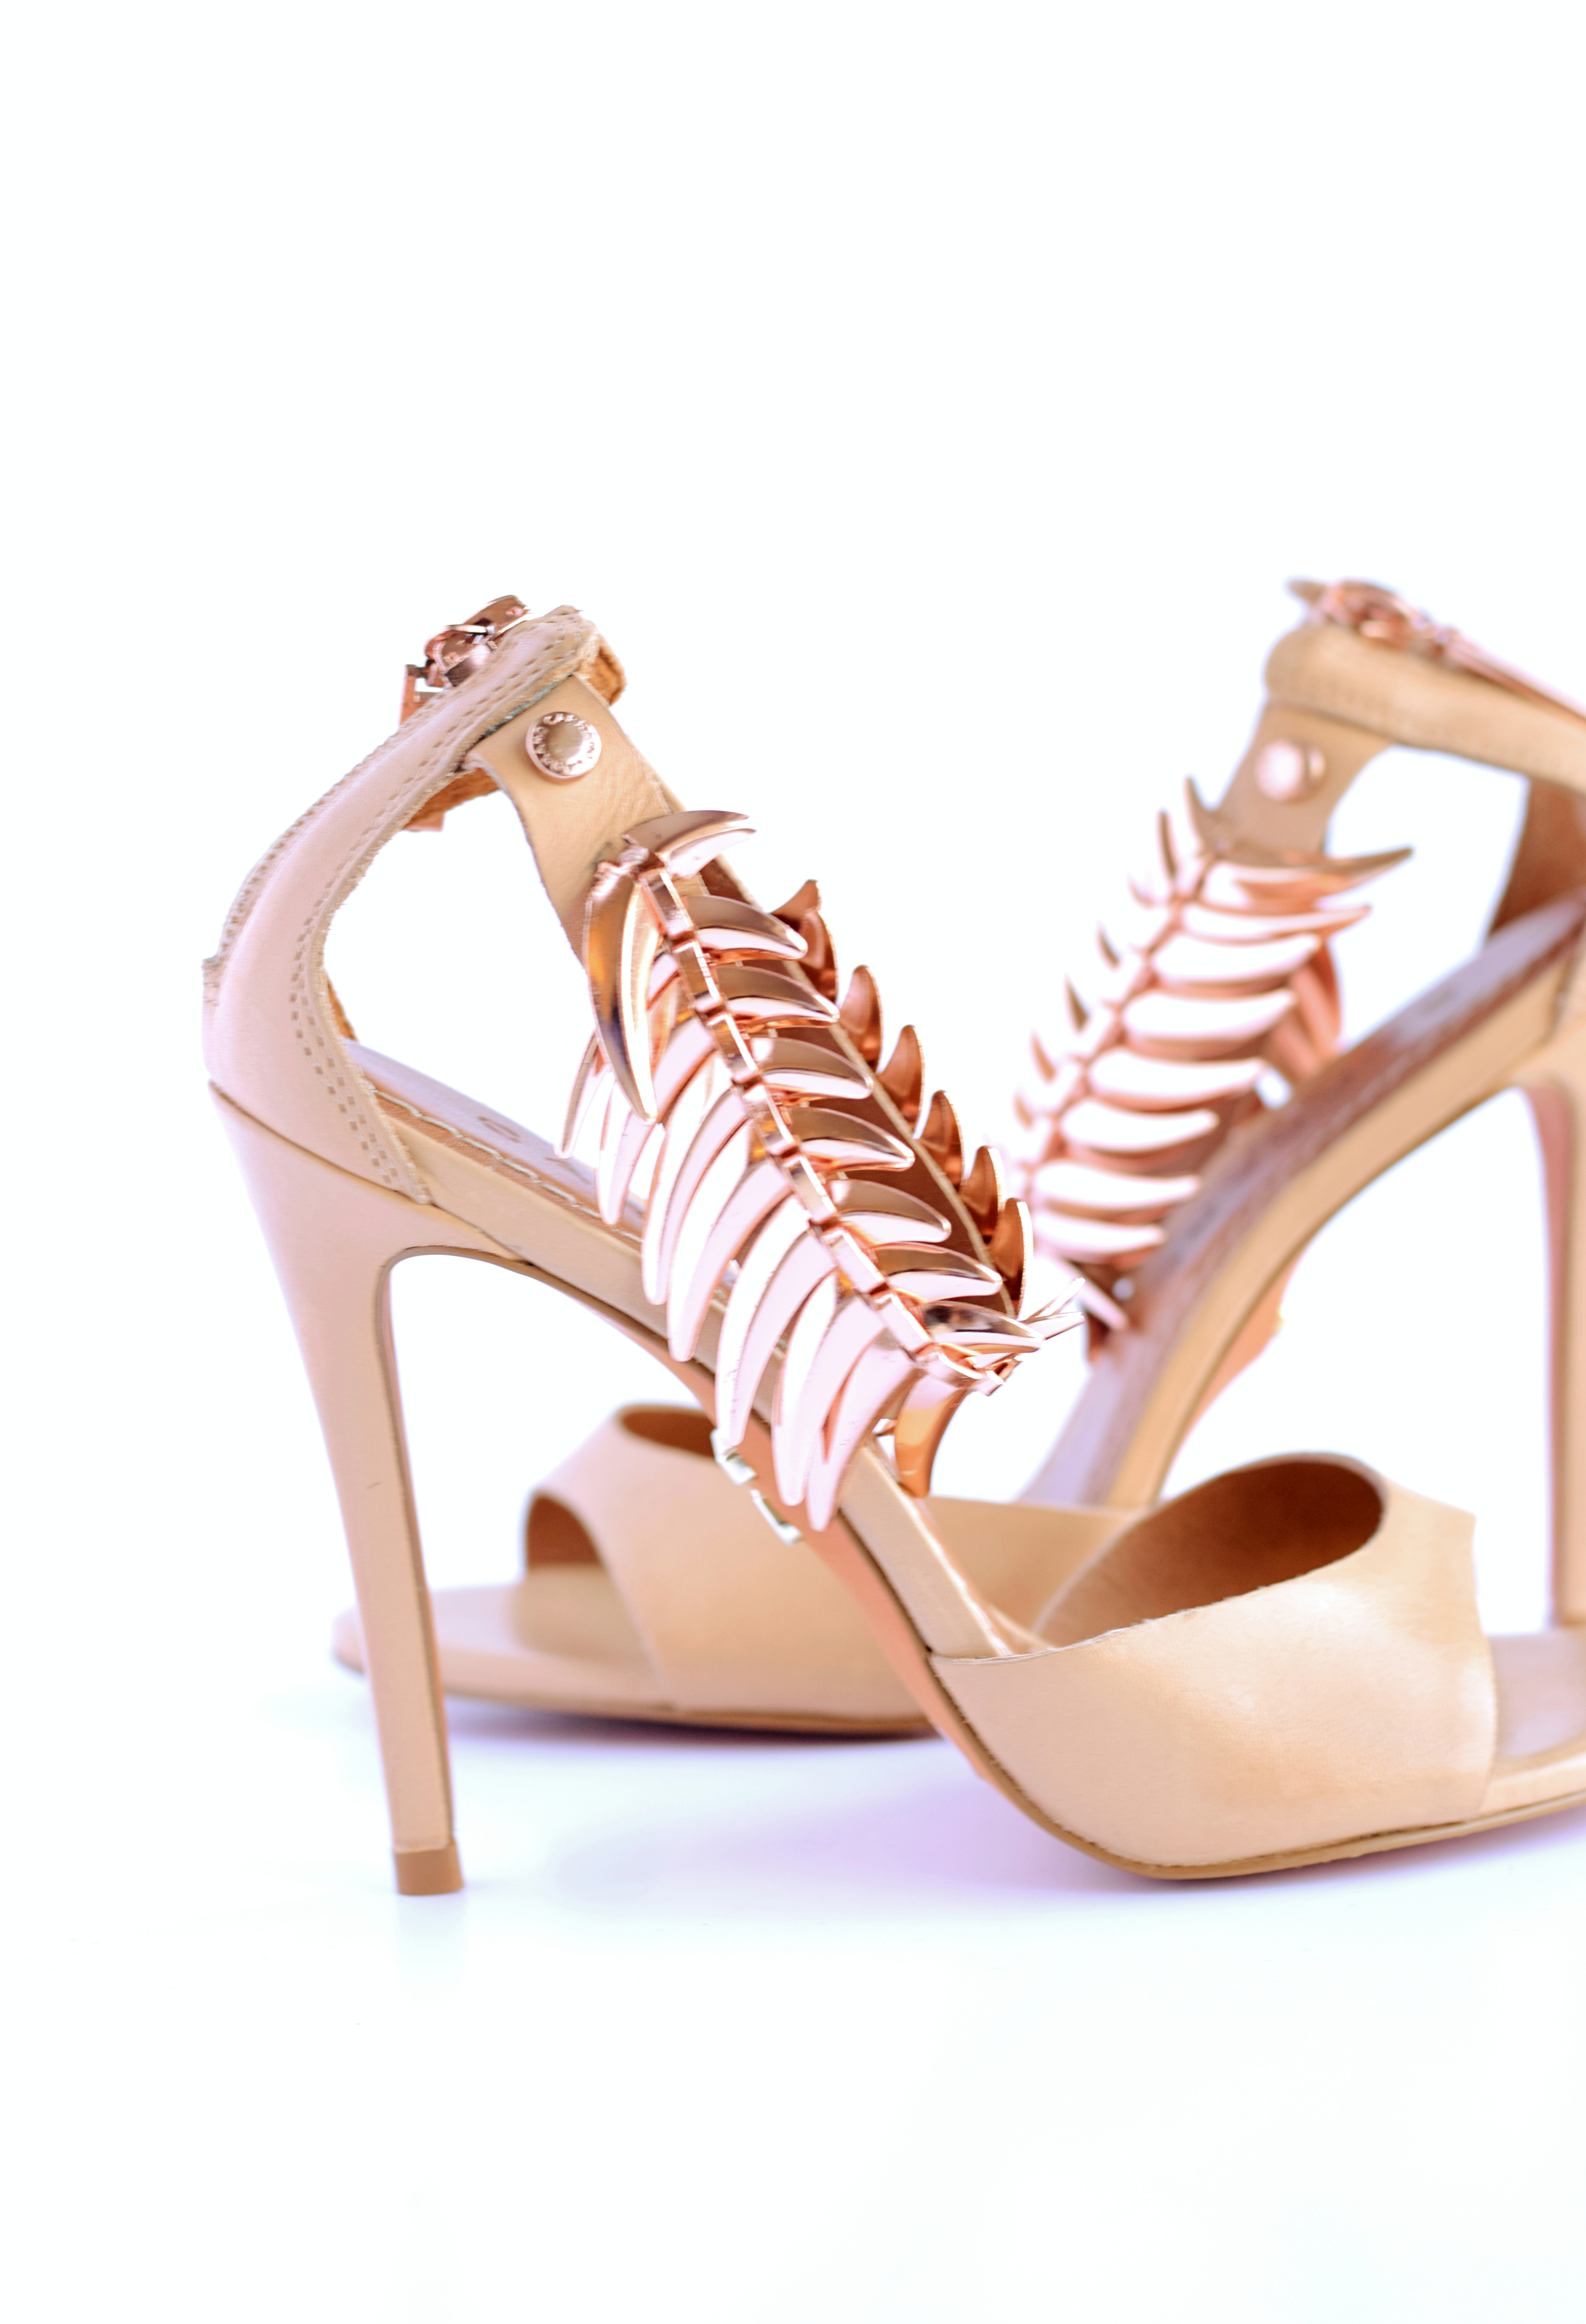 nude heeled sandals with metal detail